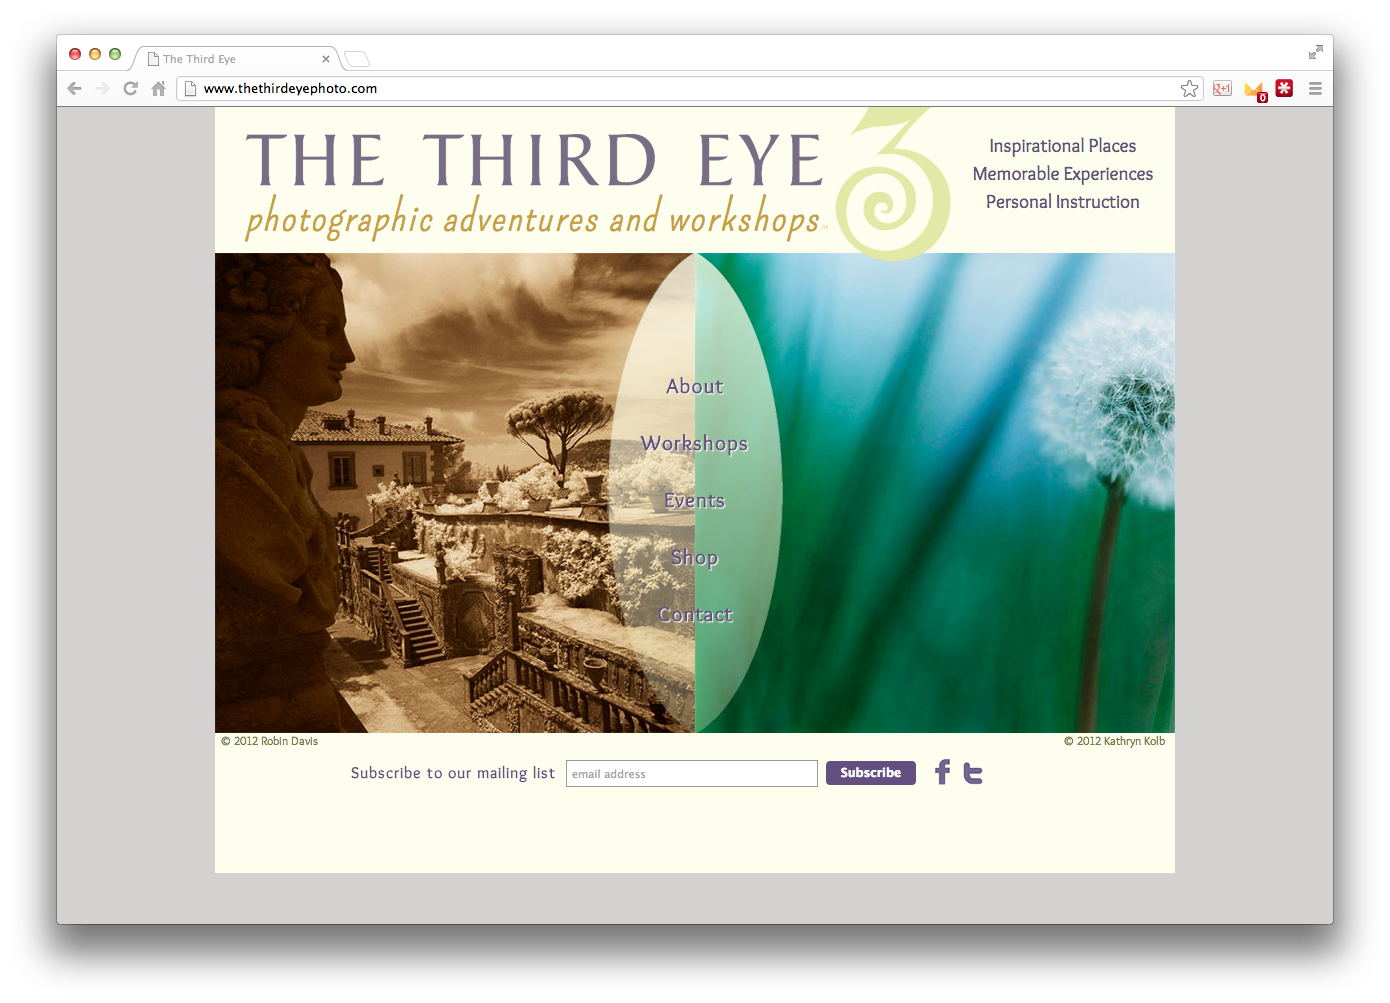 The Third Eye Photo Website Image